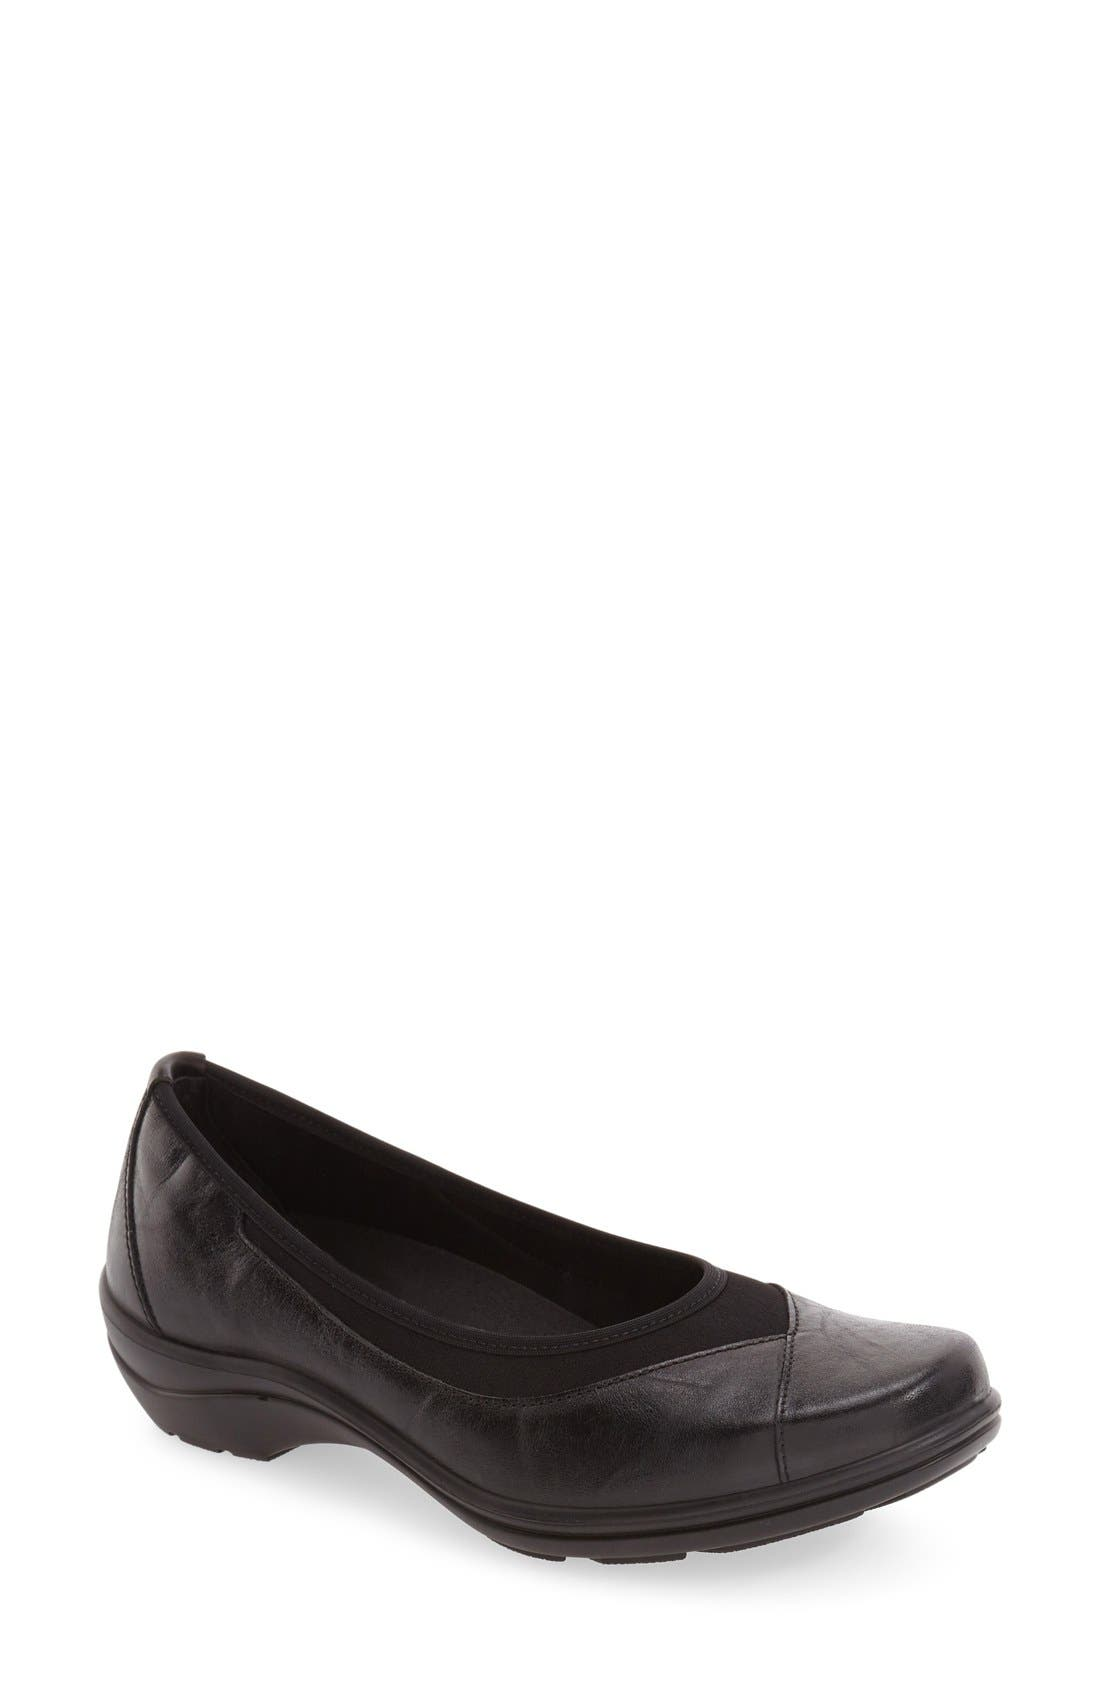 'Cassie 21' Wedge Flat,                         Main,                         color, Black Leather